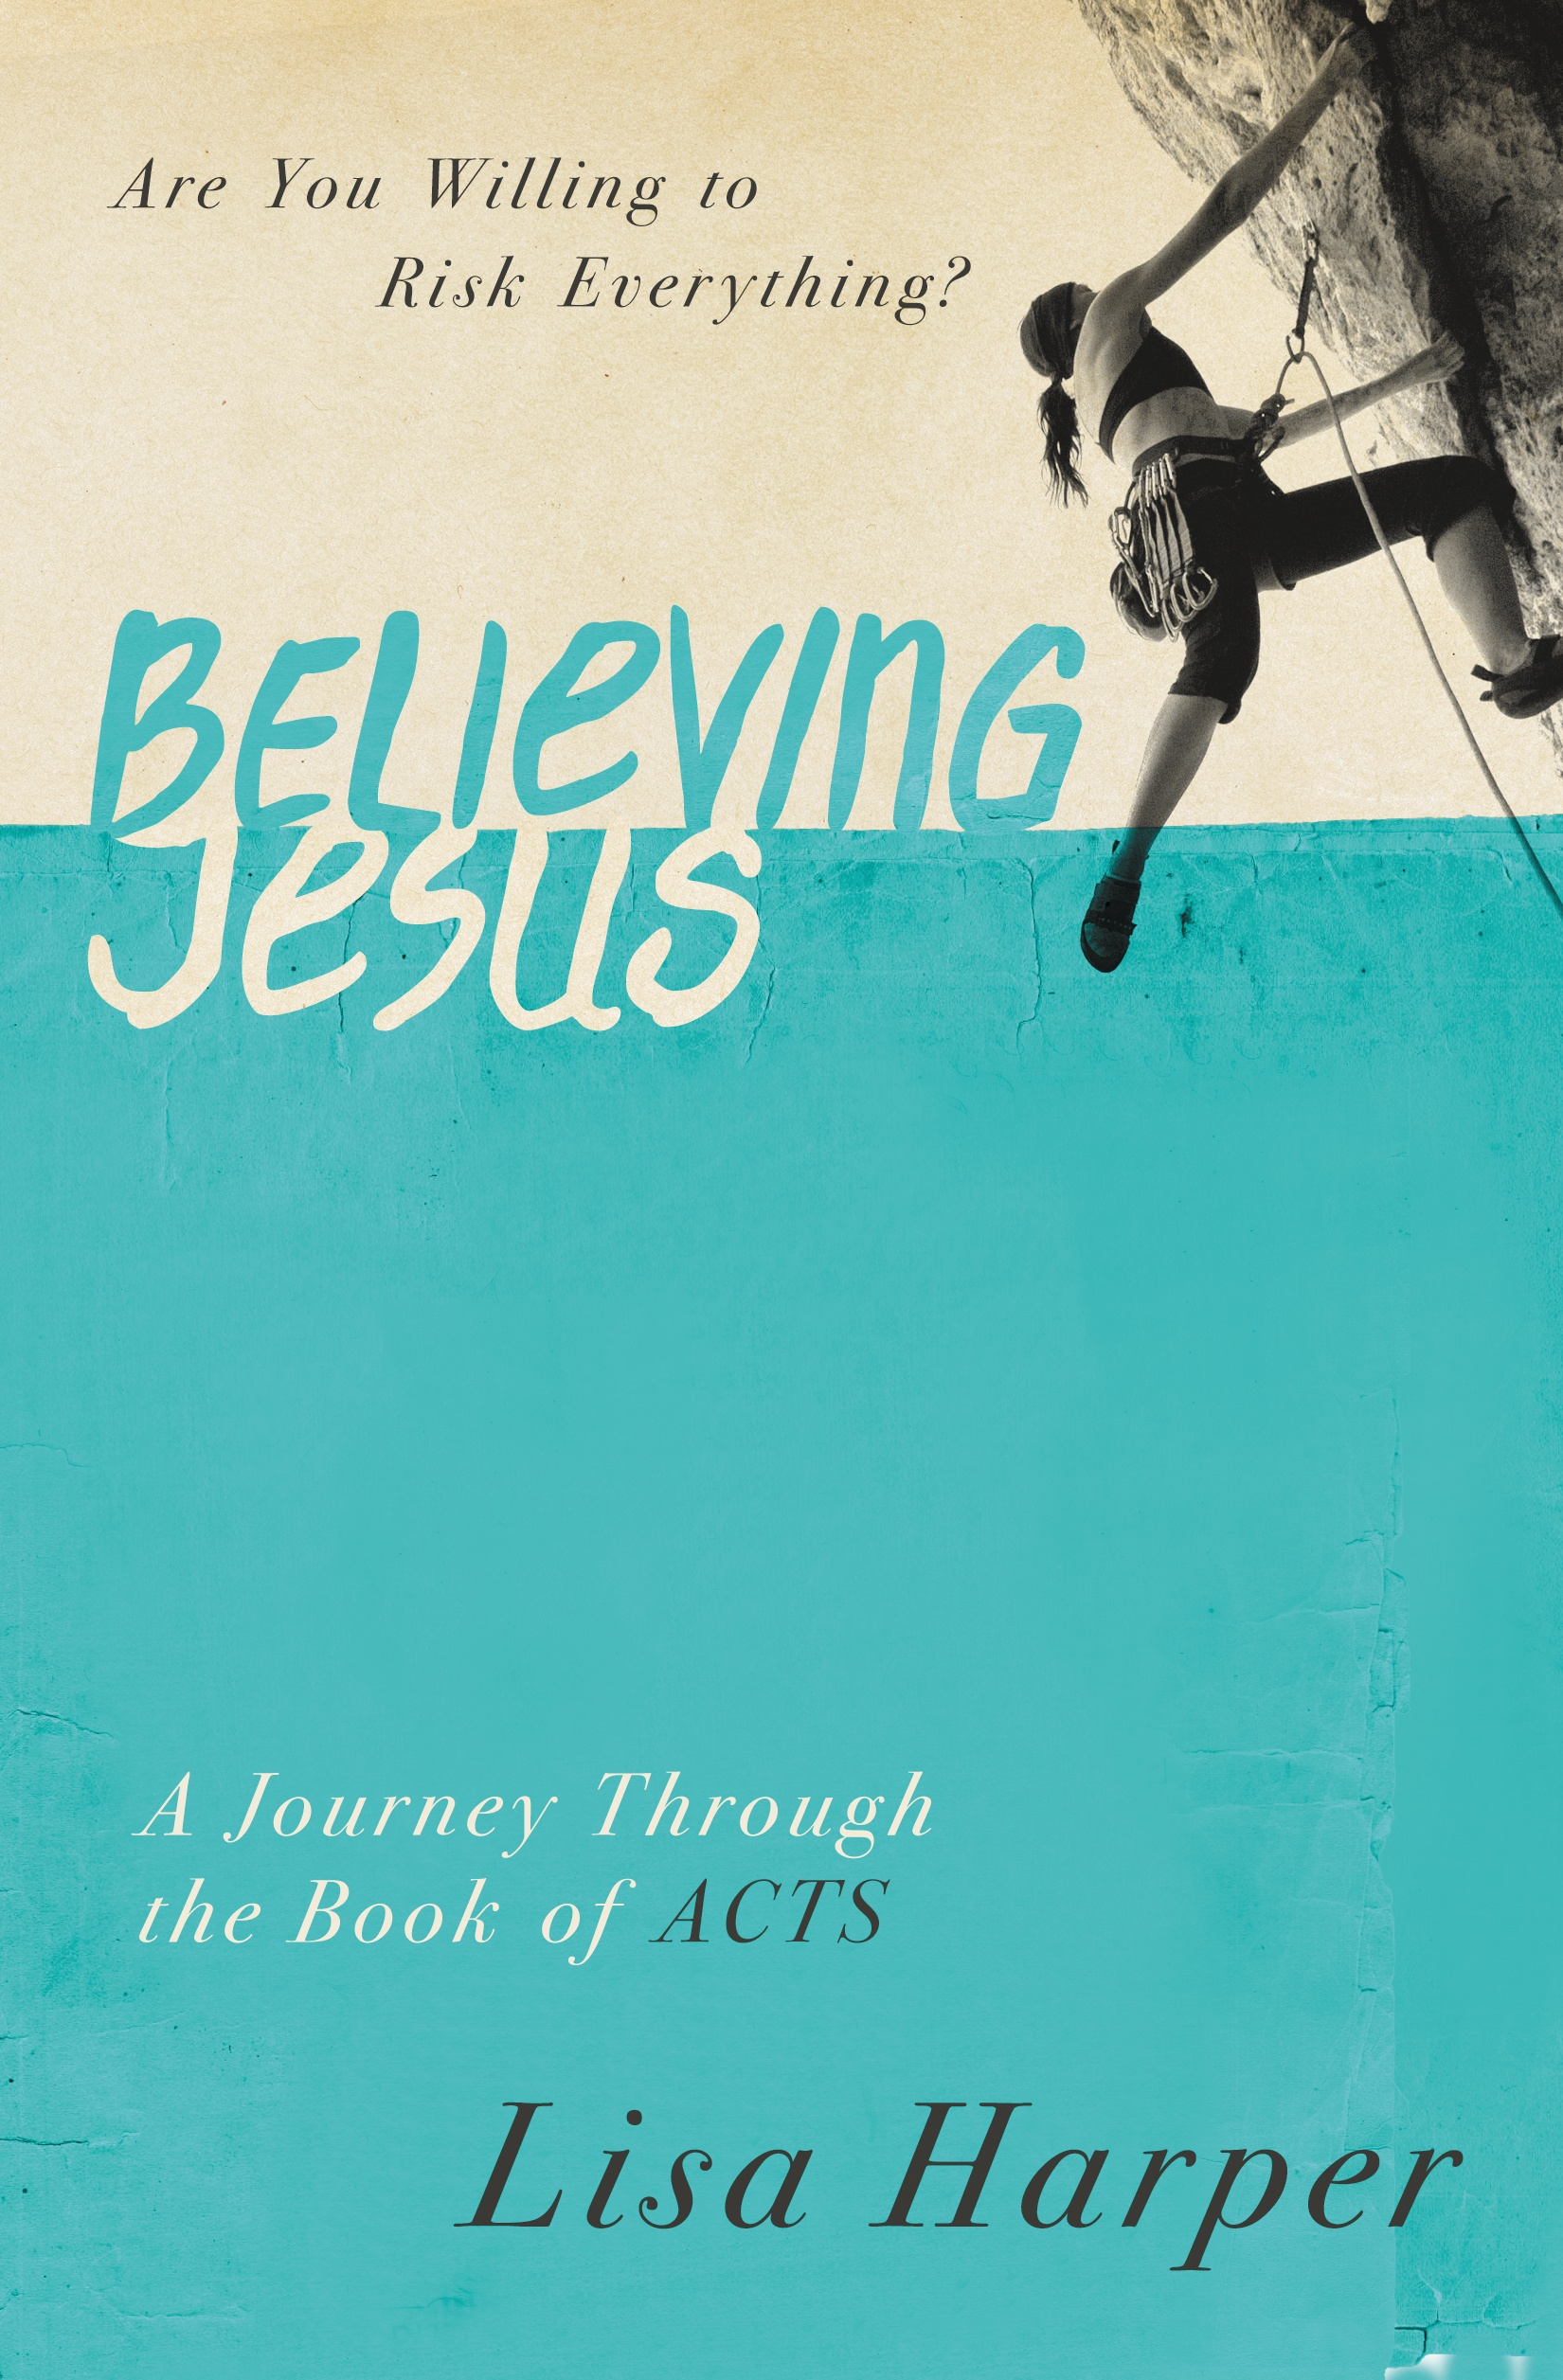 Week 3 - C02939B Believing Jesus